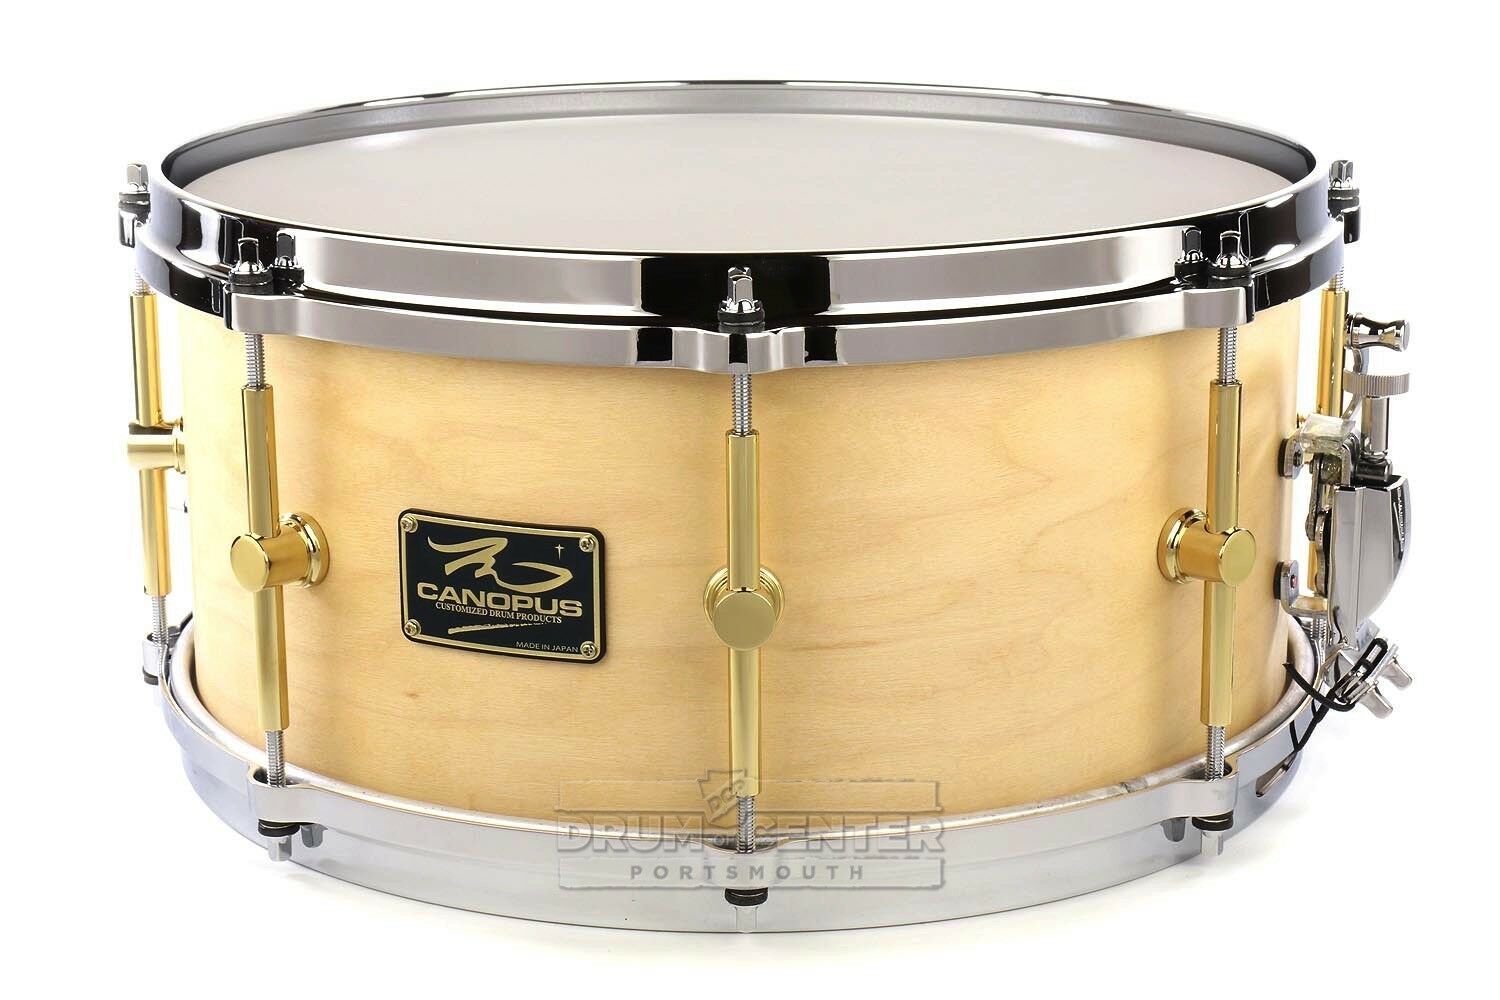 Canopus 'The Maple' Snare Drum 14x6.5 Natural Oil w  Cast Hoops - Video Demo